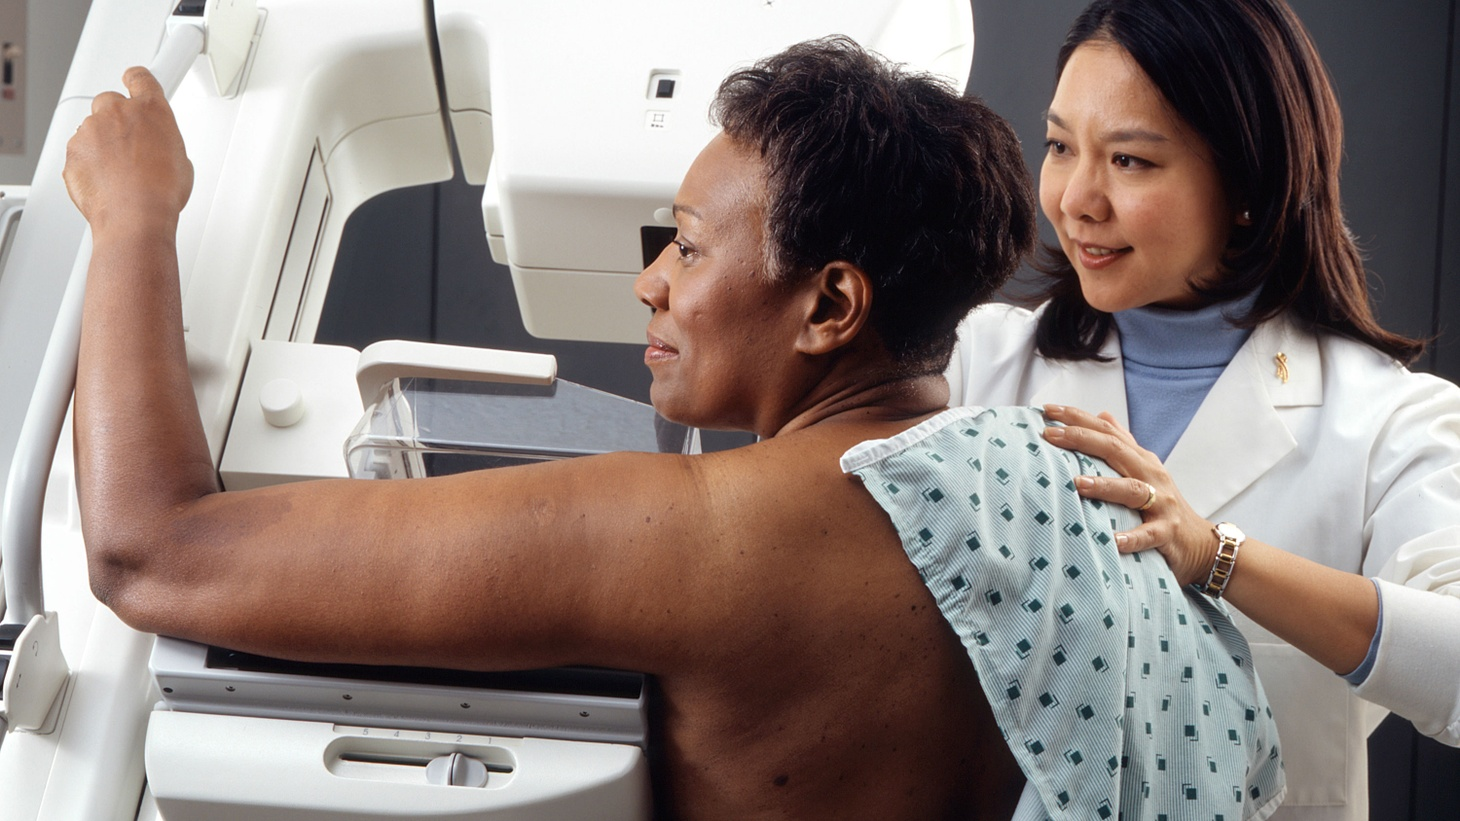 The American Cancer Society has changed its recommended age for women to start getting annual mammograms from 40 to 45. That's caused uncertainty for young women and doctors. What's worse, the risk of false positives that lead to fear and unnecessary treatments or the risk of death?